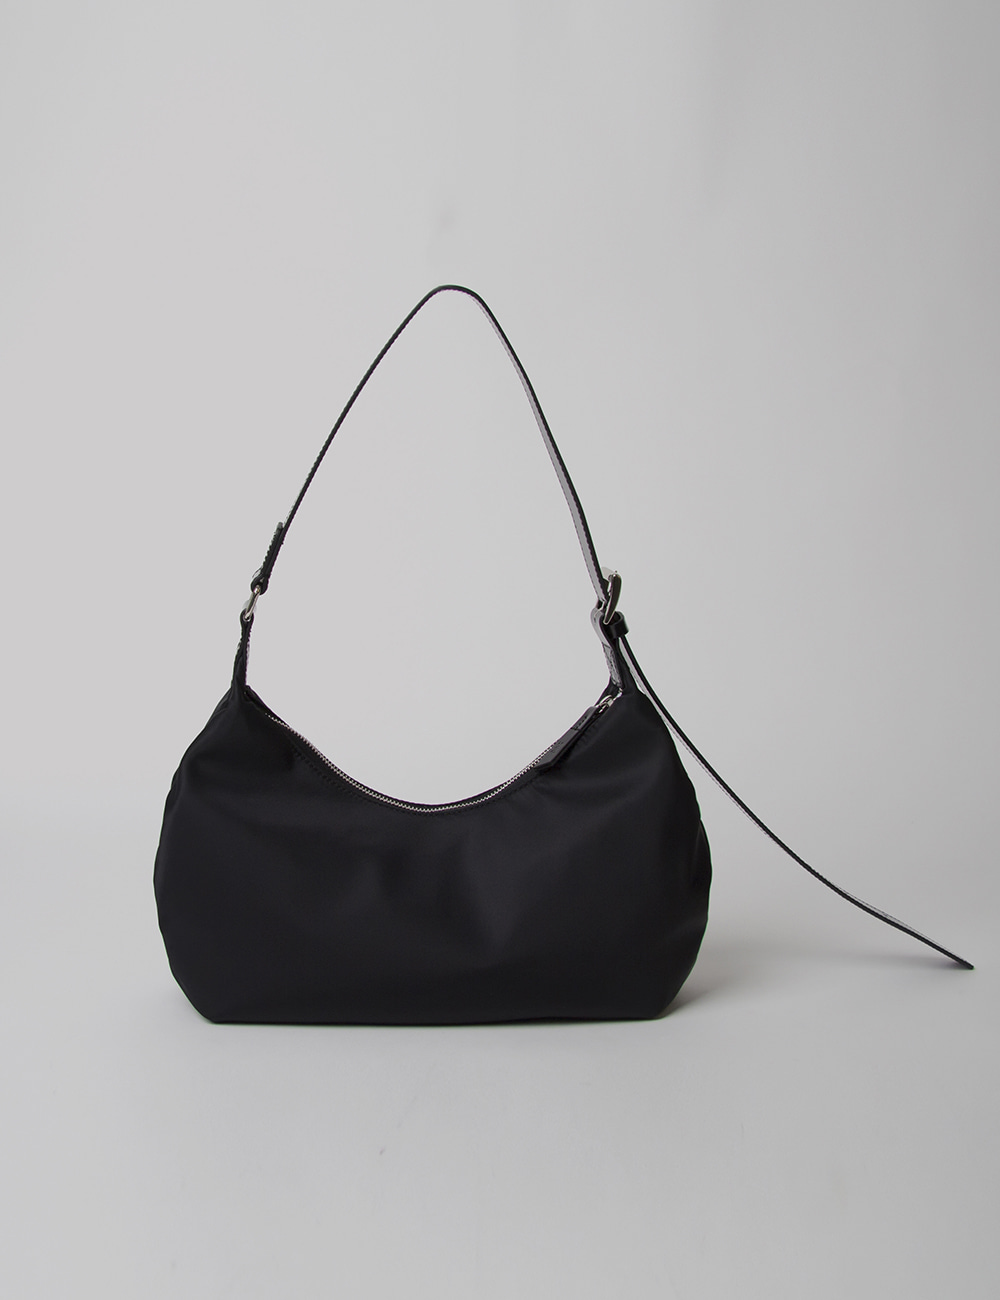 MAISON246,[21'ss 246 신상 가방]246 ILLY BAG_BLACK,No.246